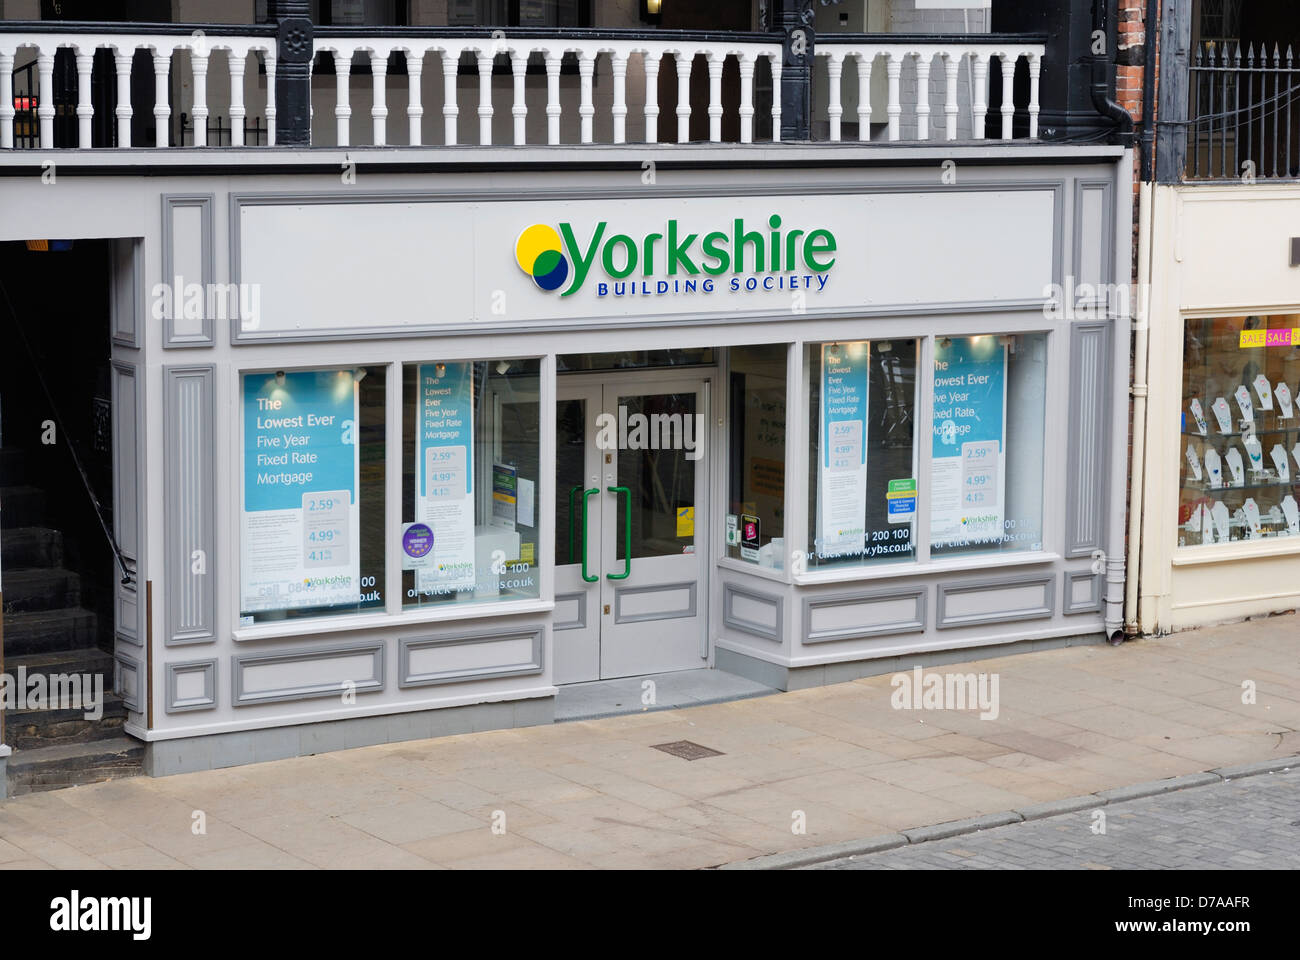 Yorkshire Building Society Mortgage Log In